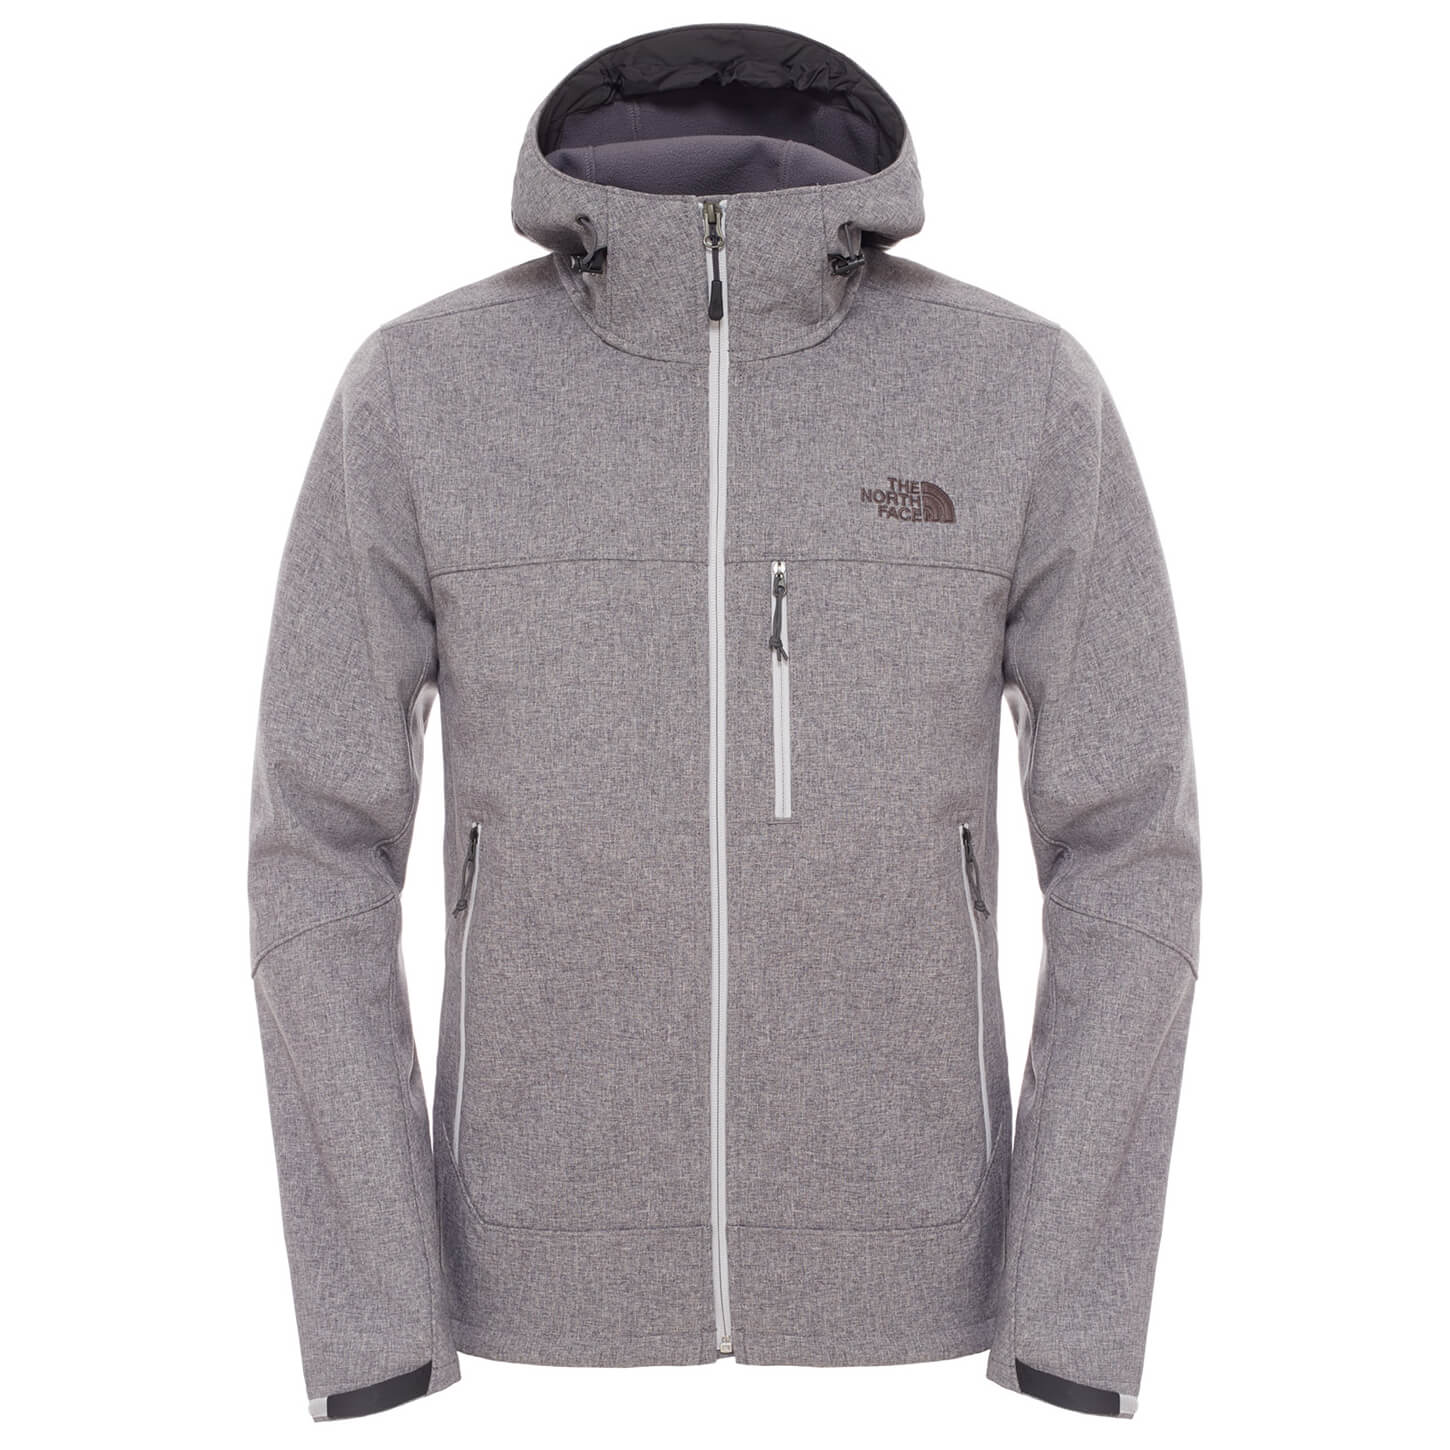 Hoodie Homme Face The Apex Softshell North Veste Bionic PXn0wOk8